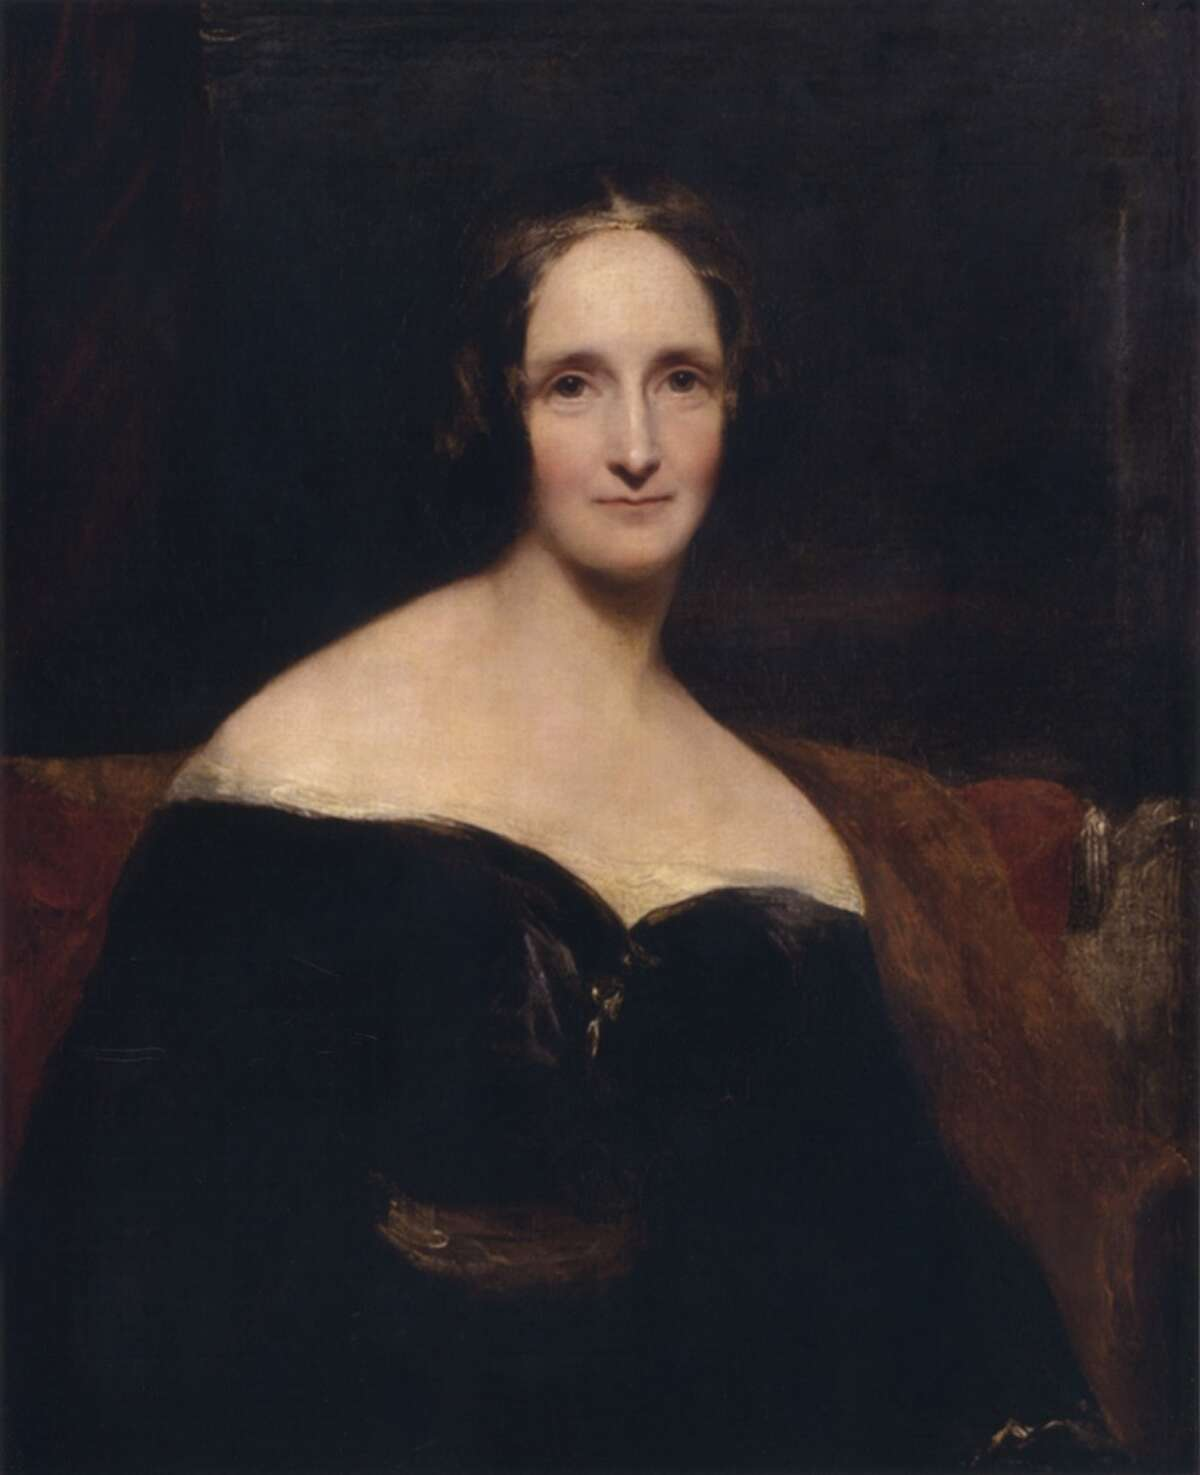 The writer Mary Shelley was 19 when she wrote